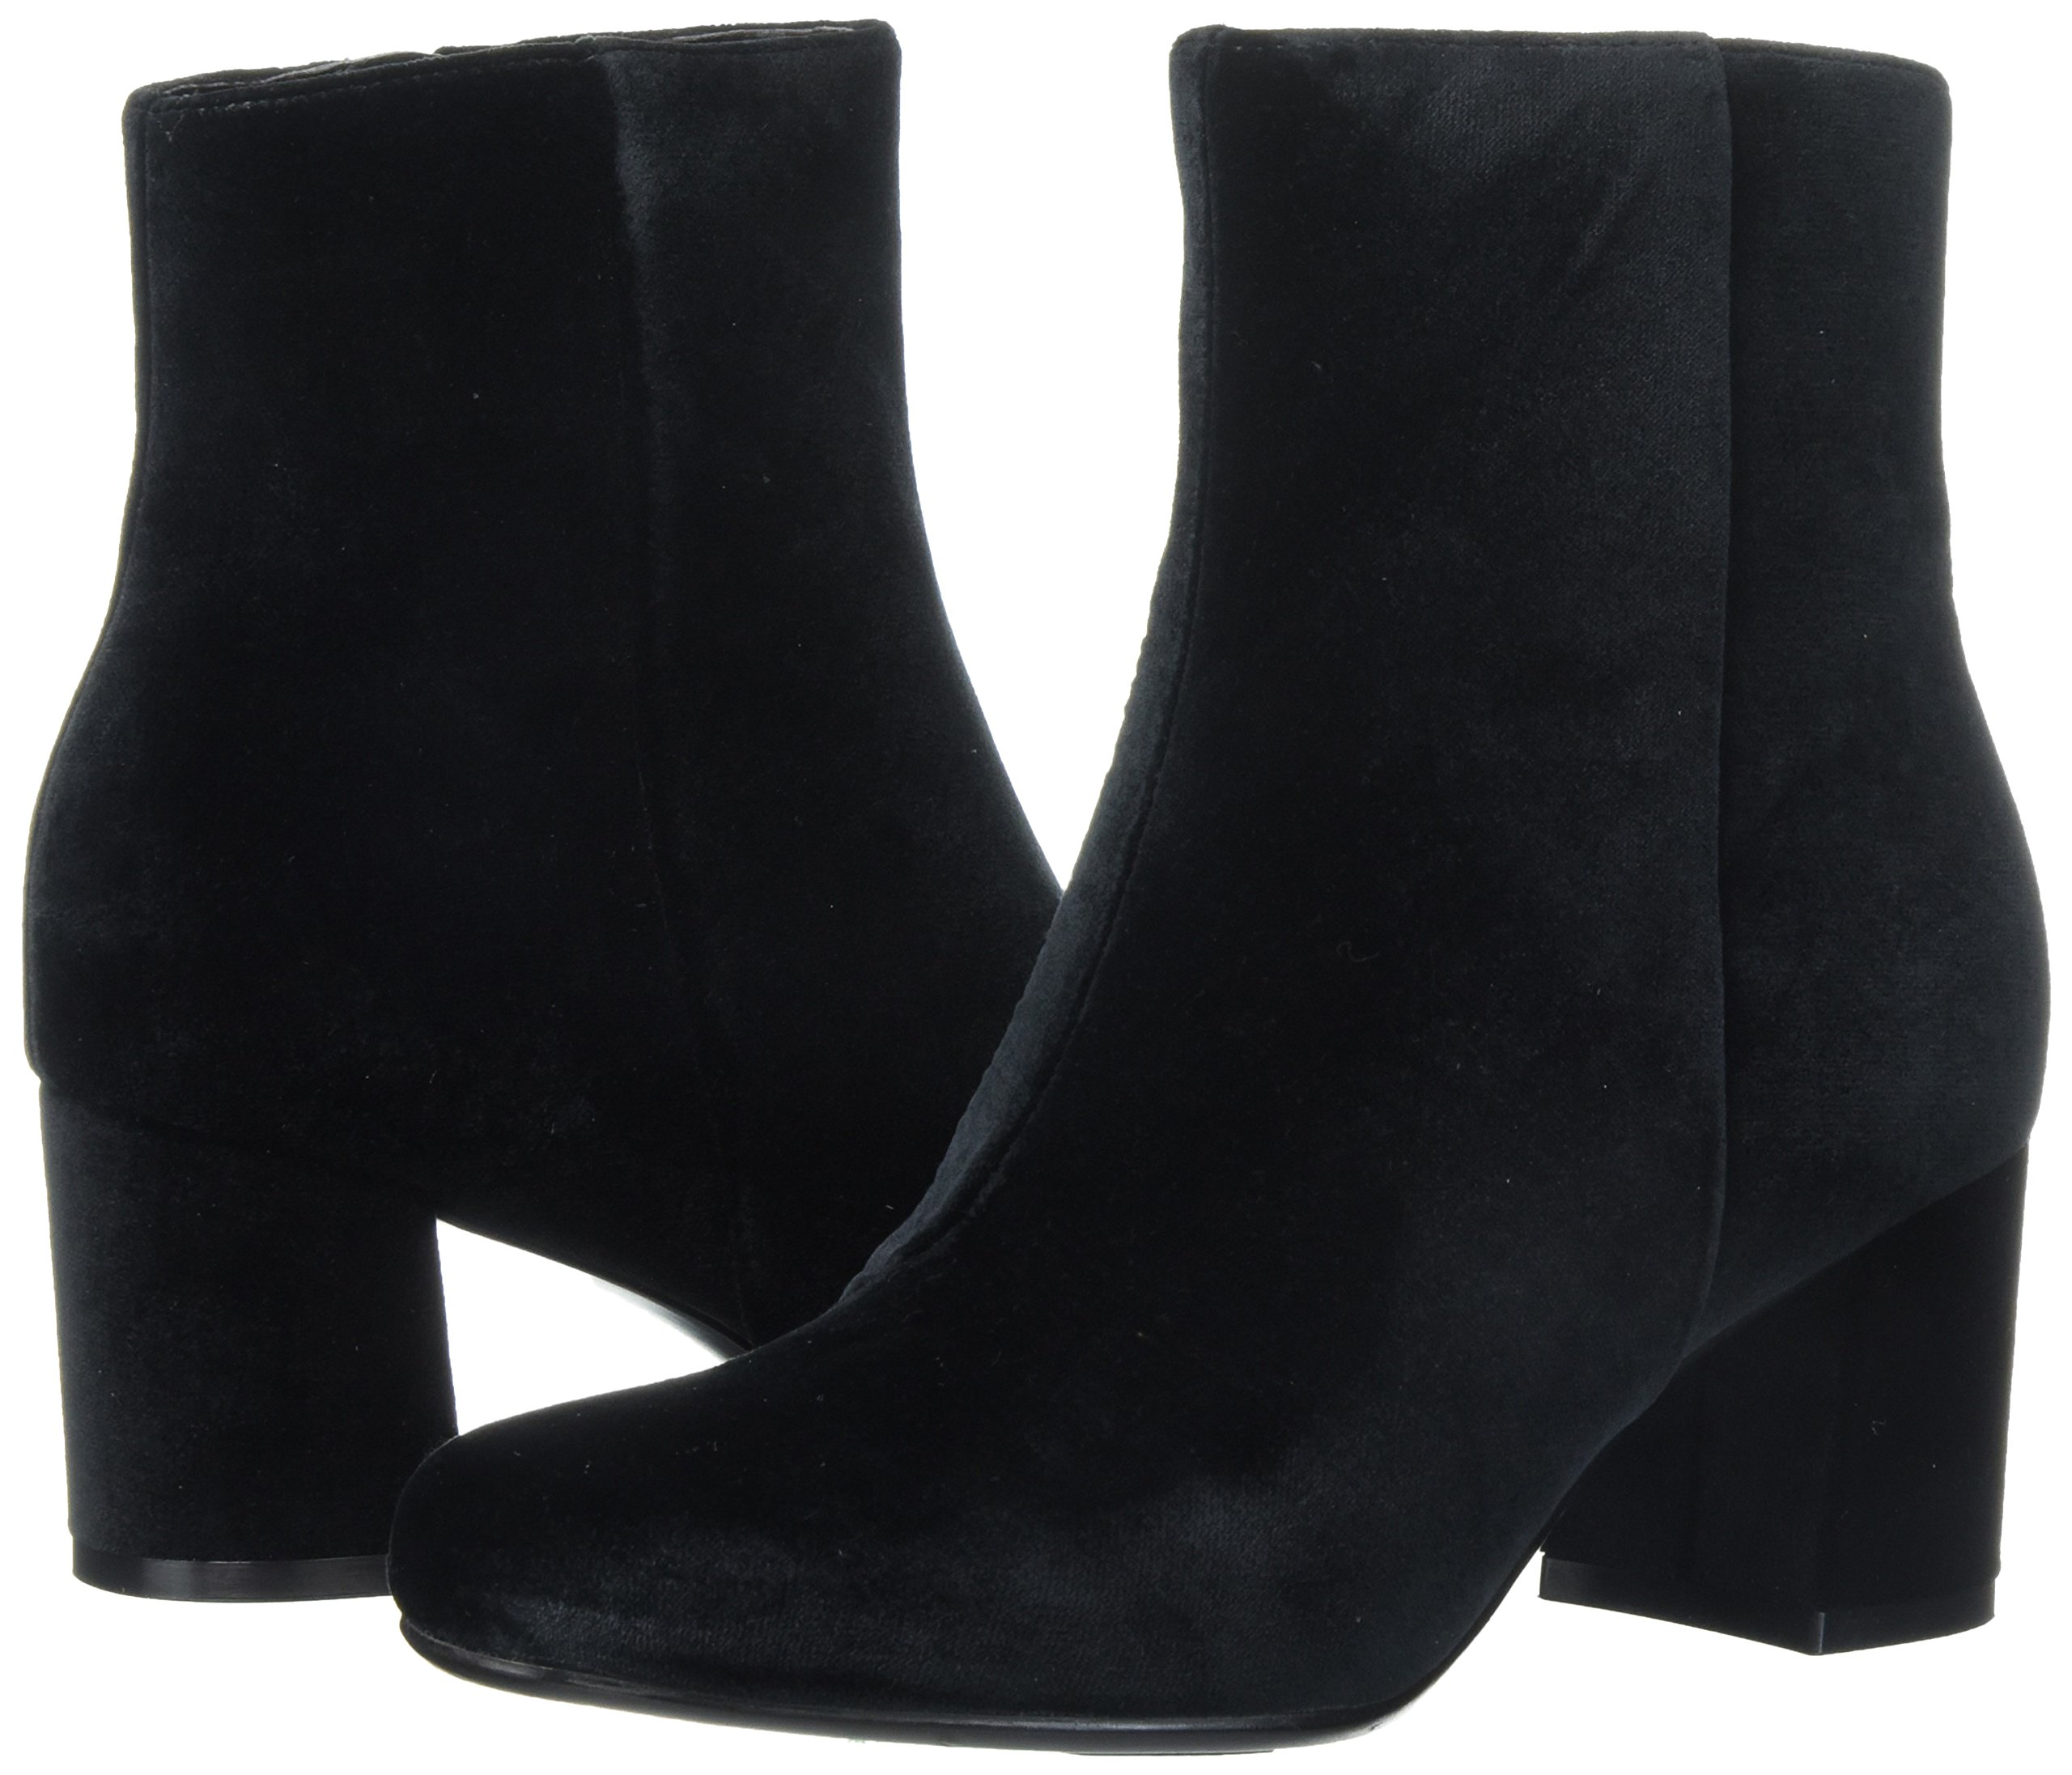 Naturalizer Women's Westing Boot, Black, 6.5 M US by Naturalizer (Image #6)